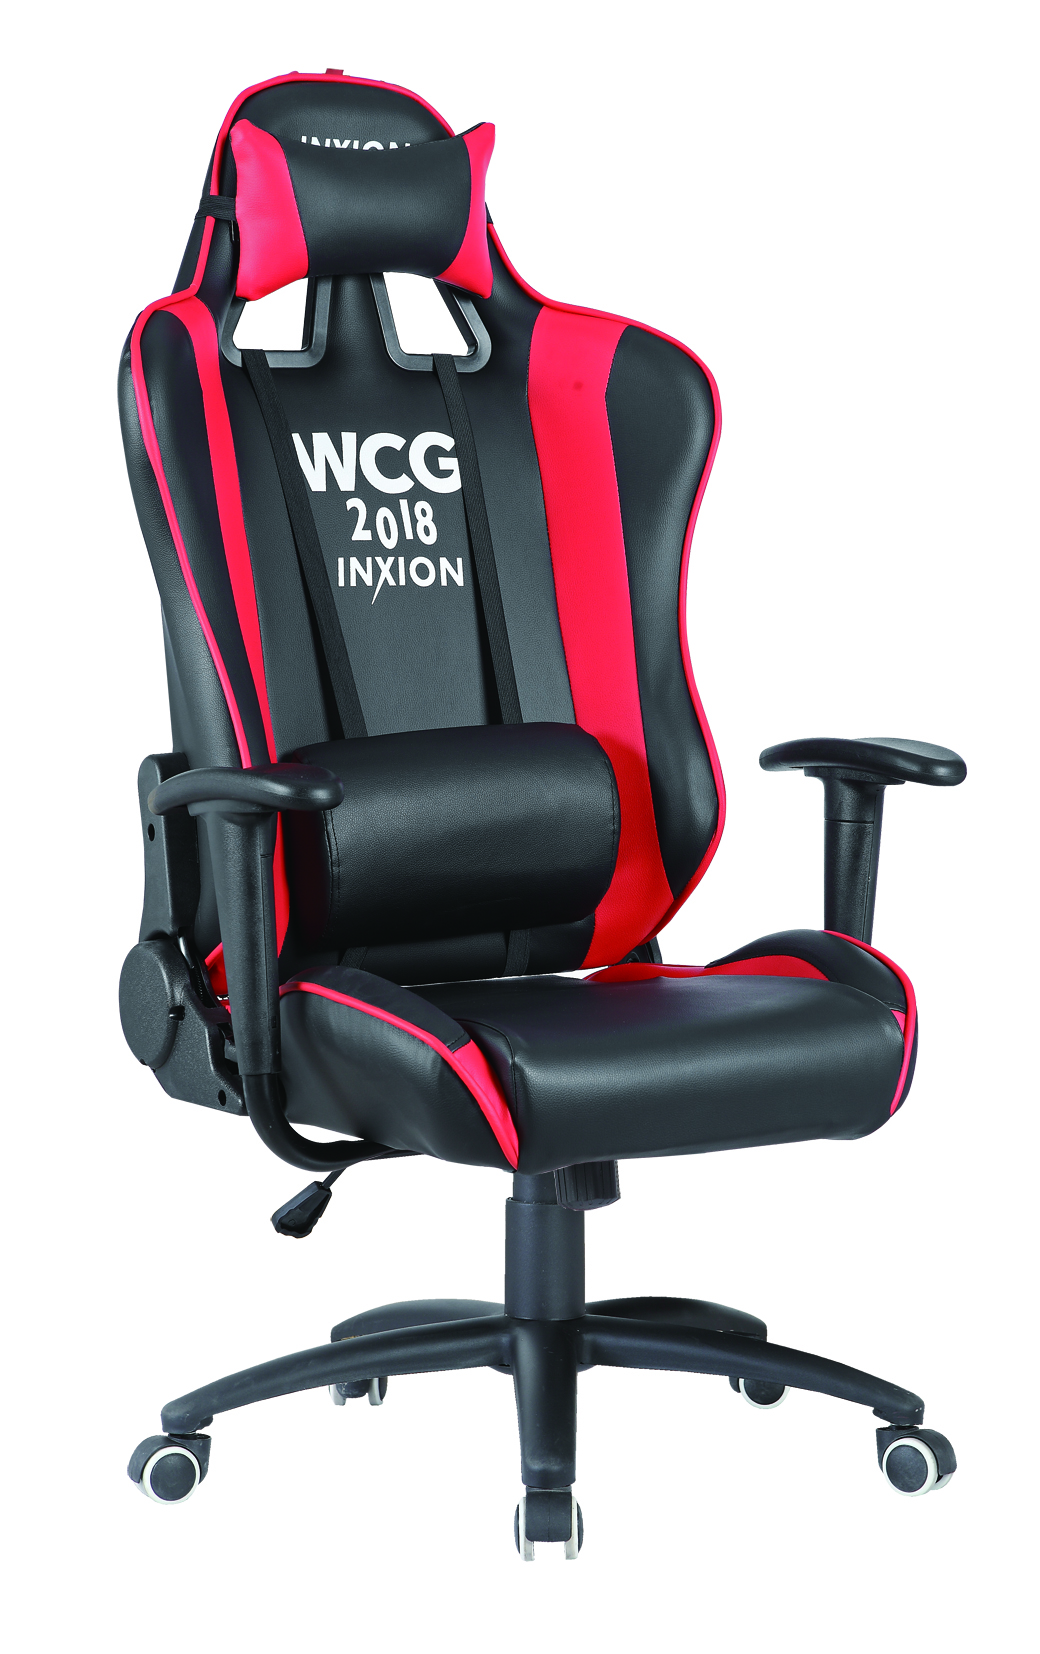 Height Adjustable Chair Recaro Office Chair Height Adjustable Racing Office Recline Leather Gaming Chair Buy Gaming Chair High Quality Office Chair Racing Chair Product On